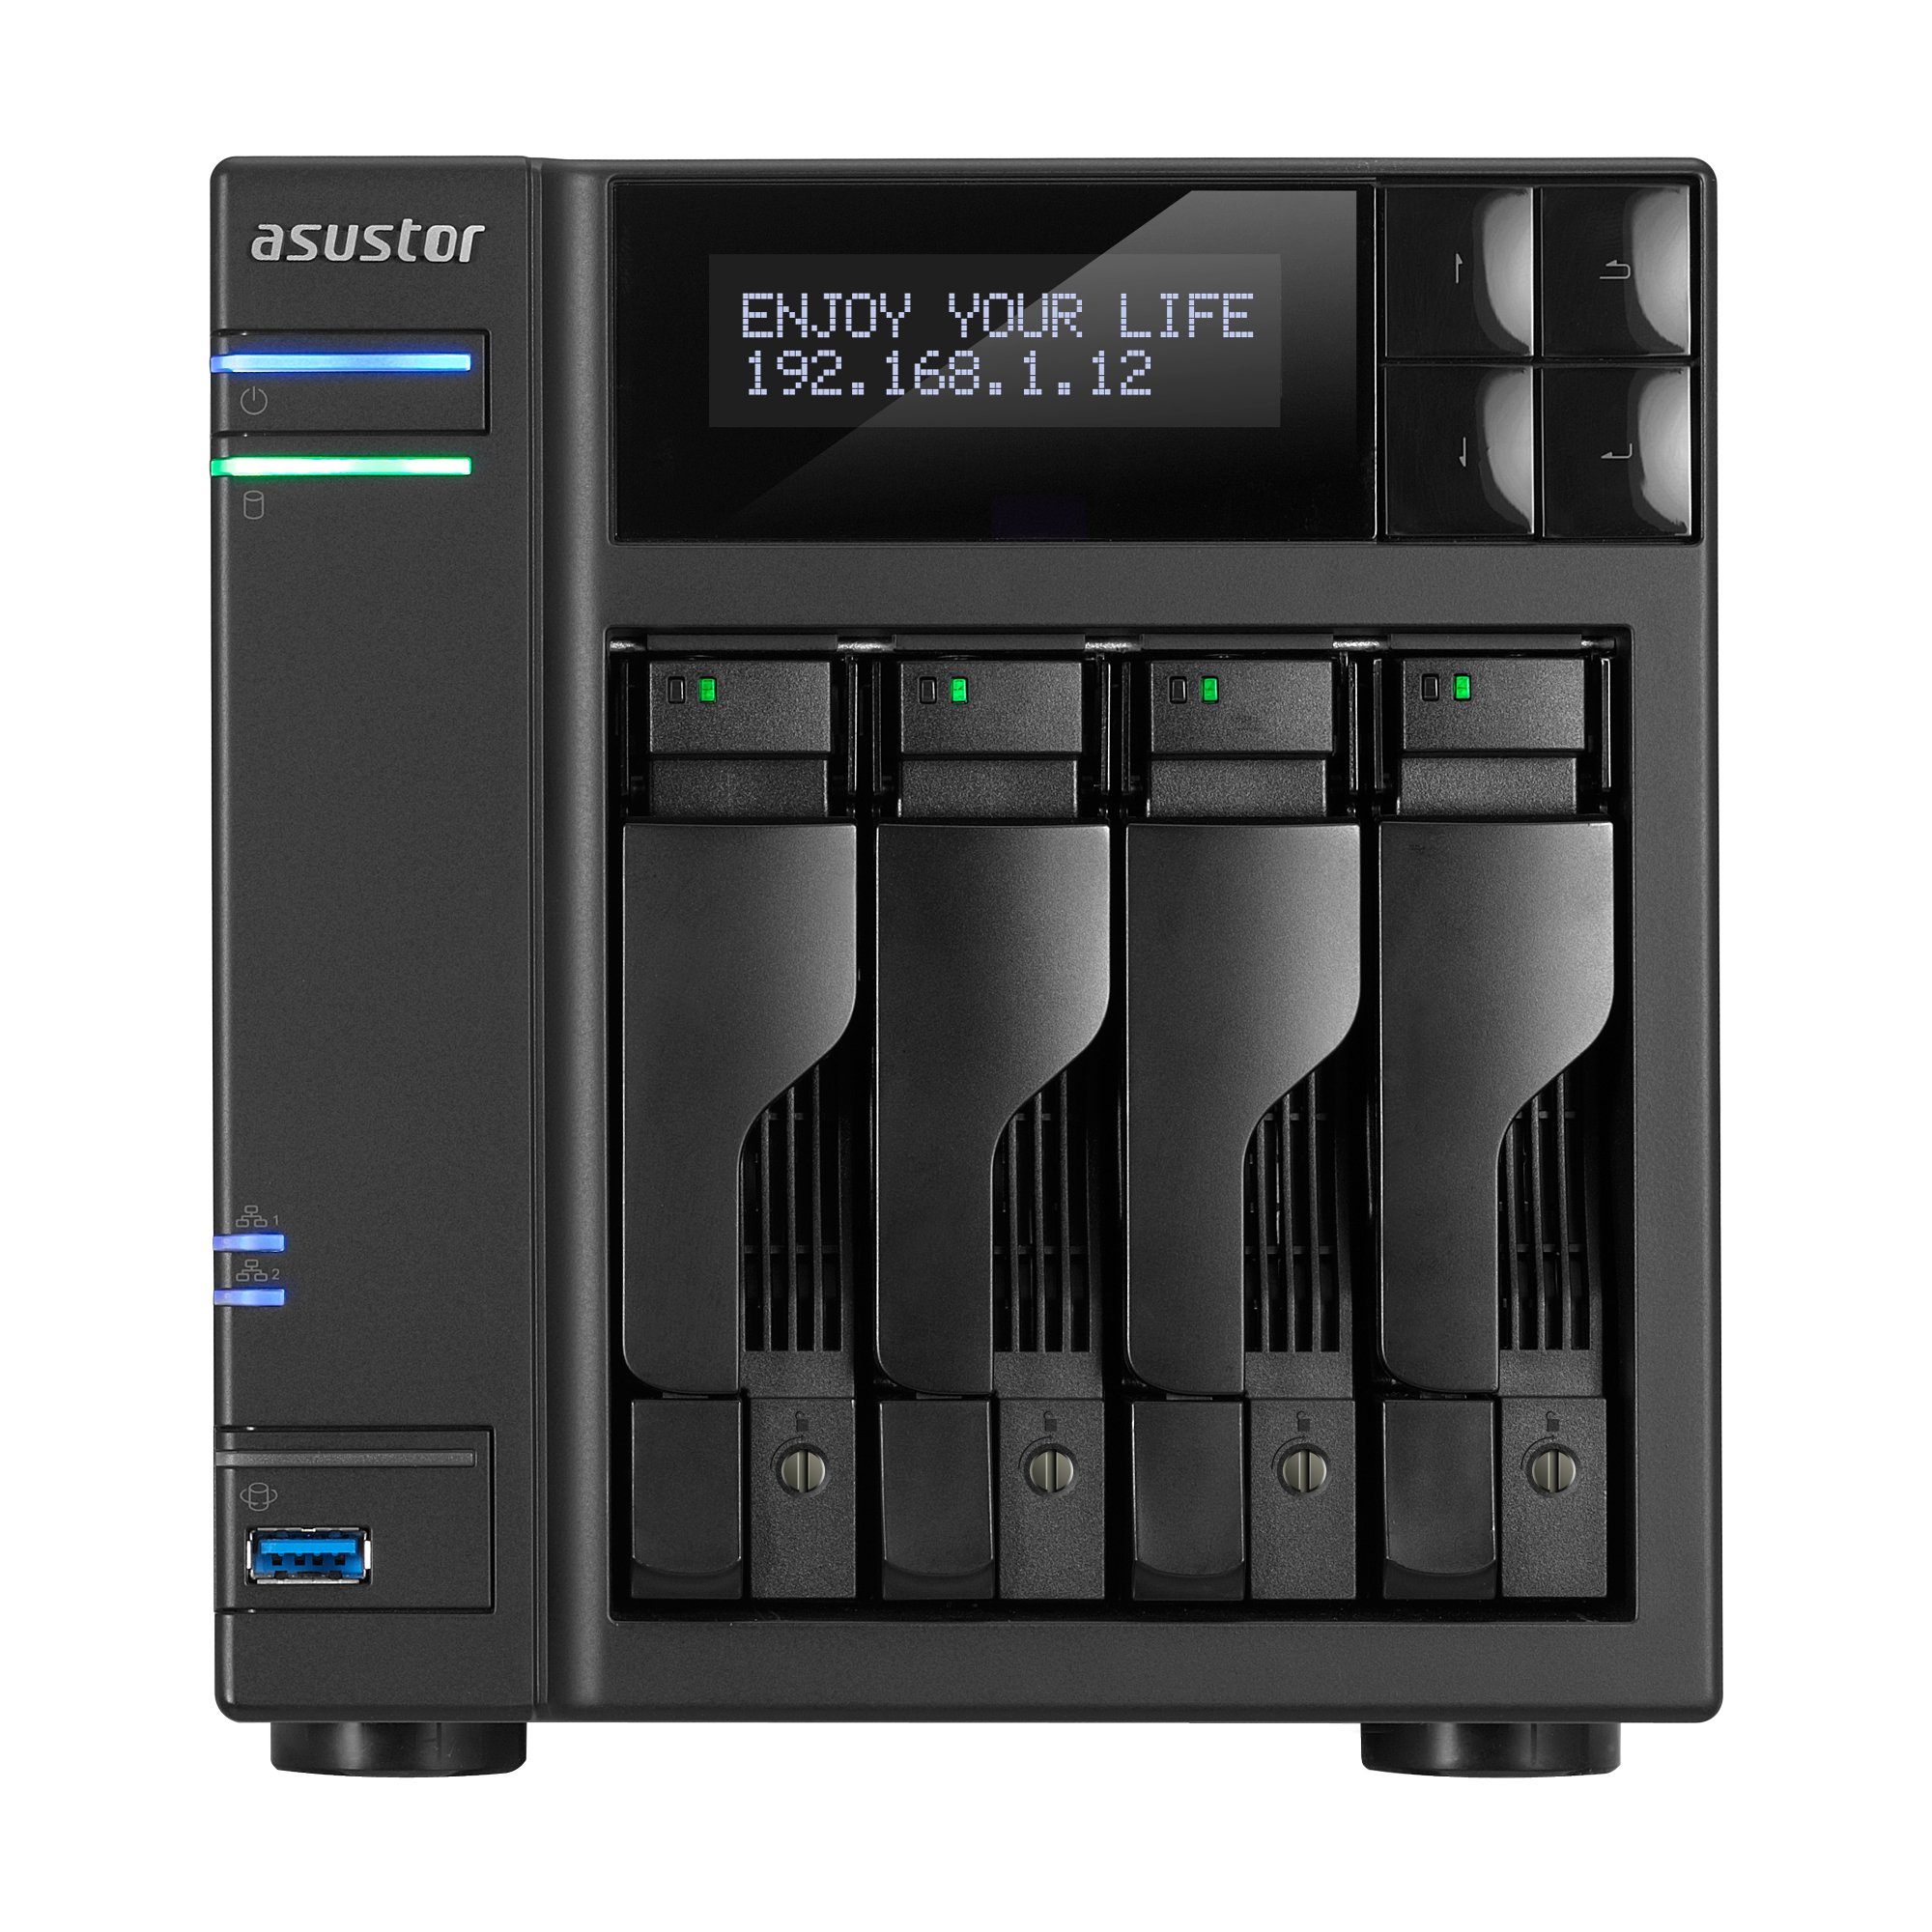 ASUSTOR AS6204T 4-Bay INTEL Quad-Core NAS by Asustor (Image #1)